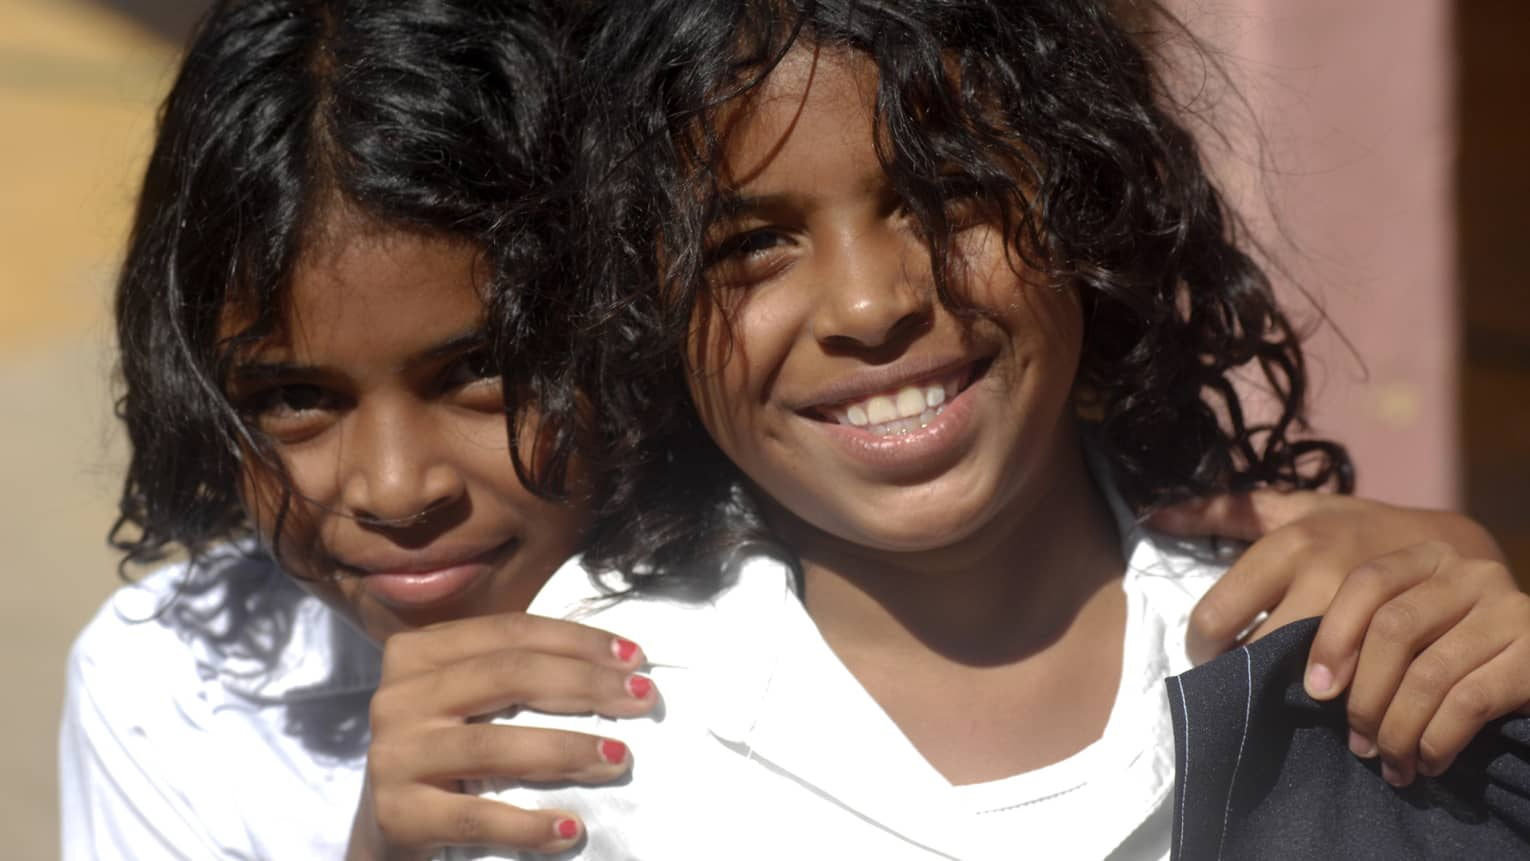 Close-up of two young smiling children, one with hands on the other's shoulders